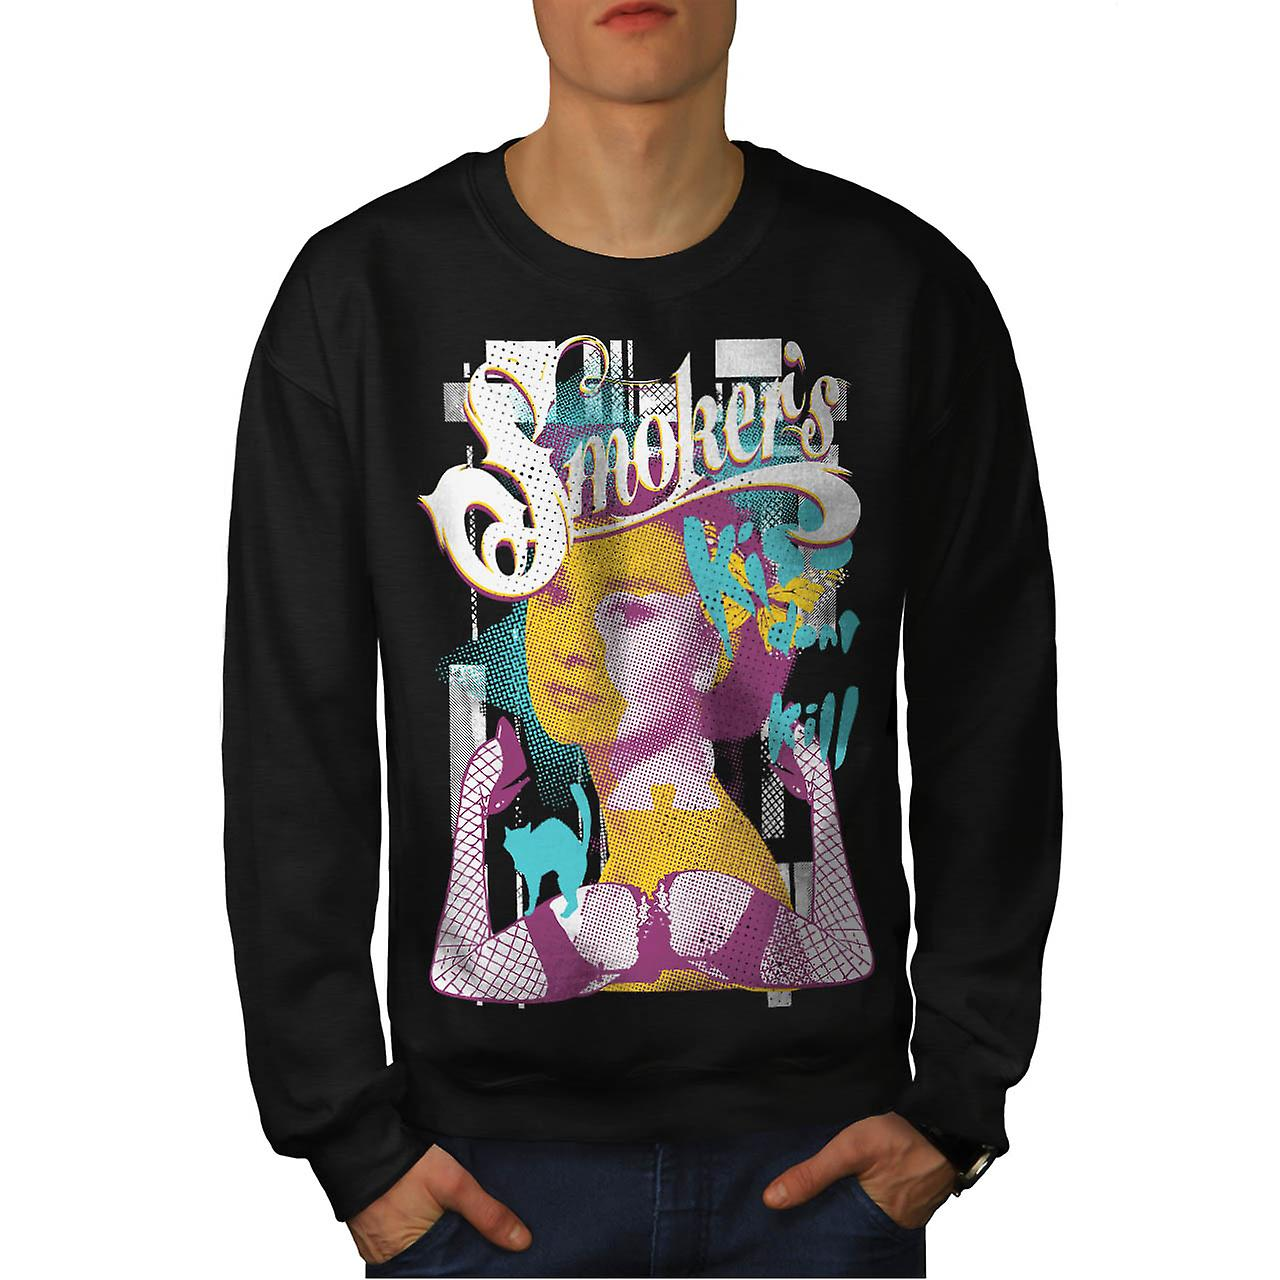 Smoker Kiss Dont Kill Audrey Leg Men Black Sweatshirt | Wellcoda